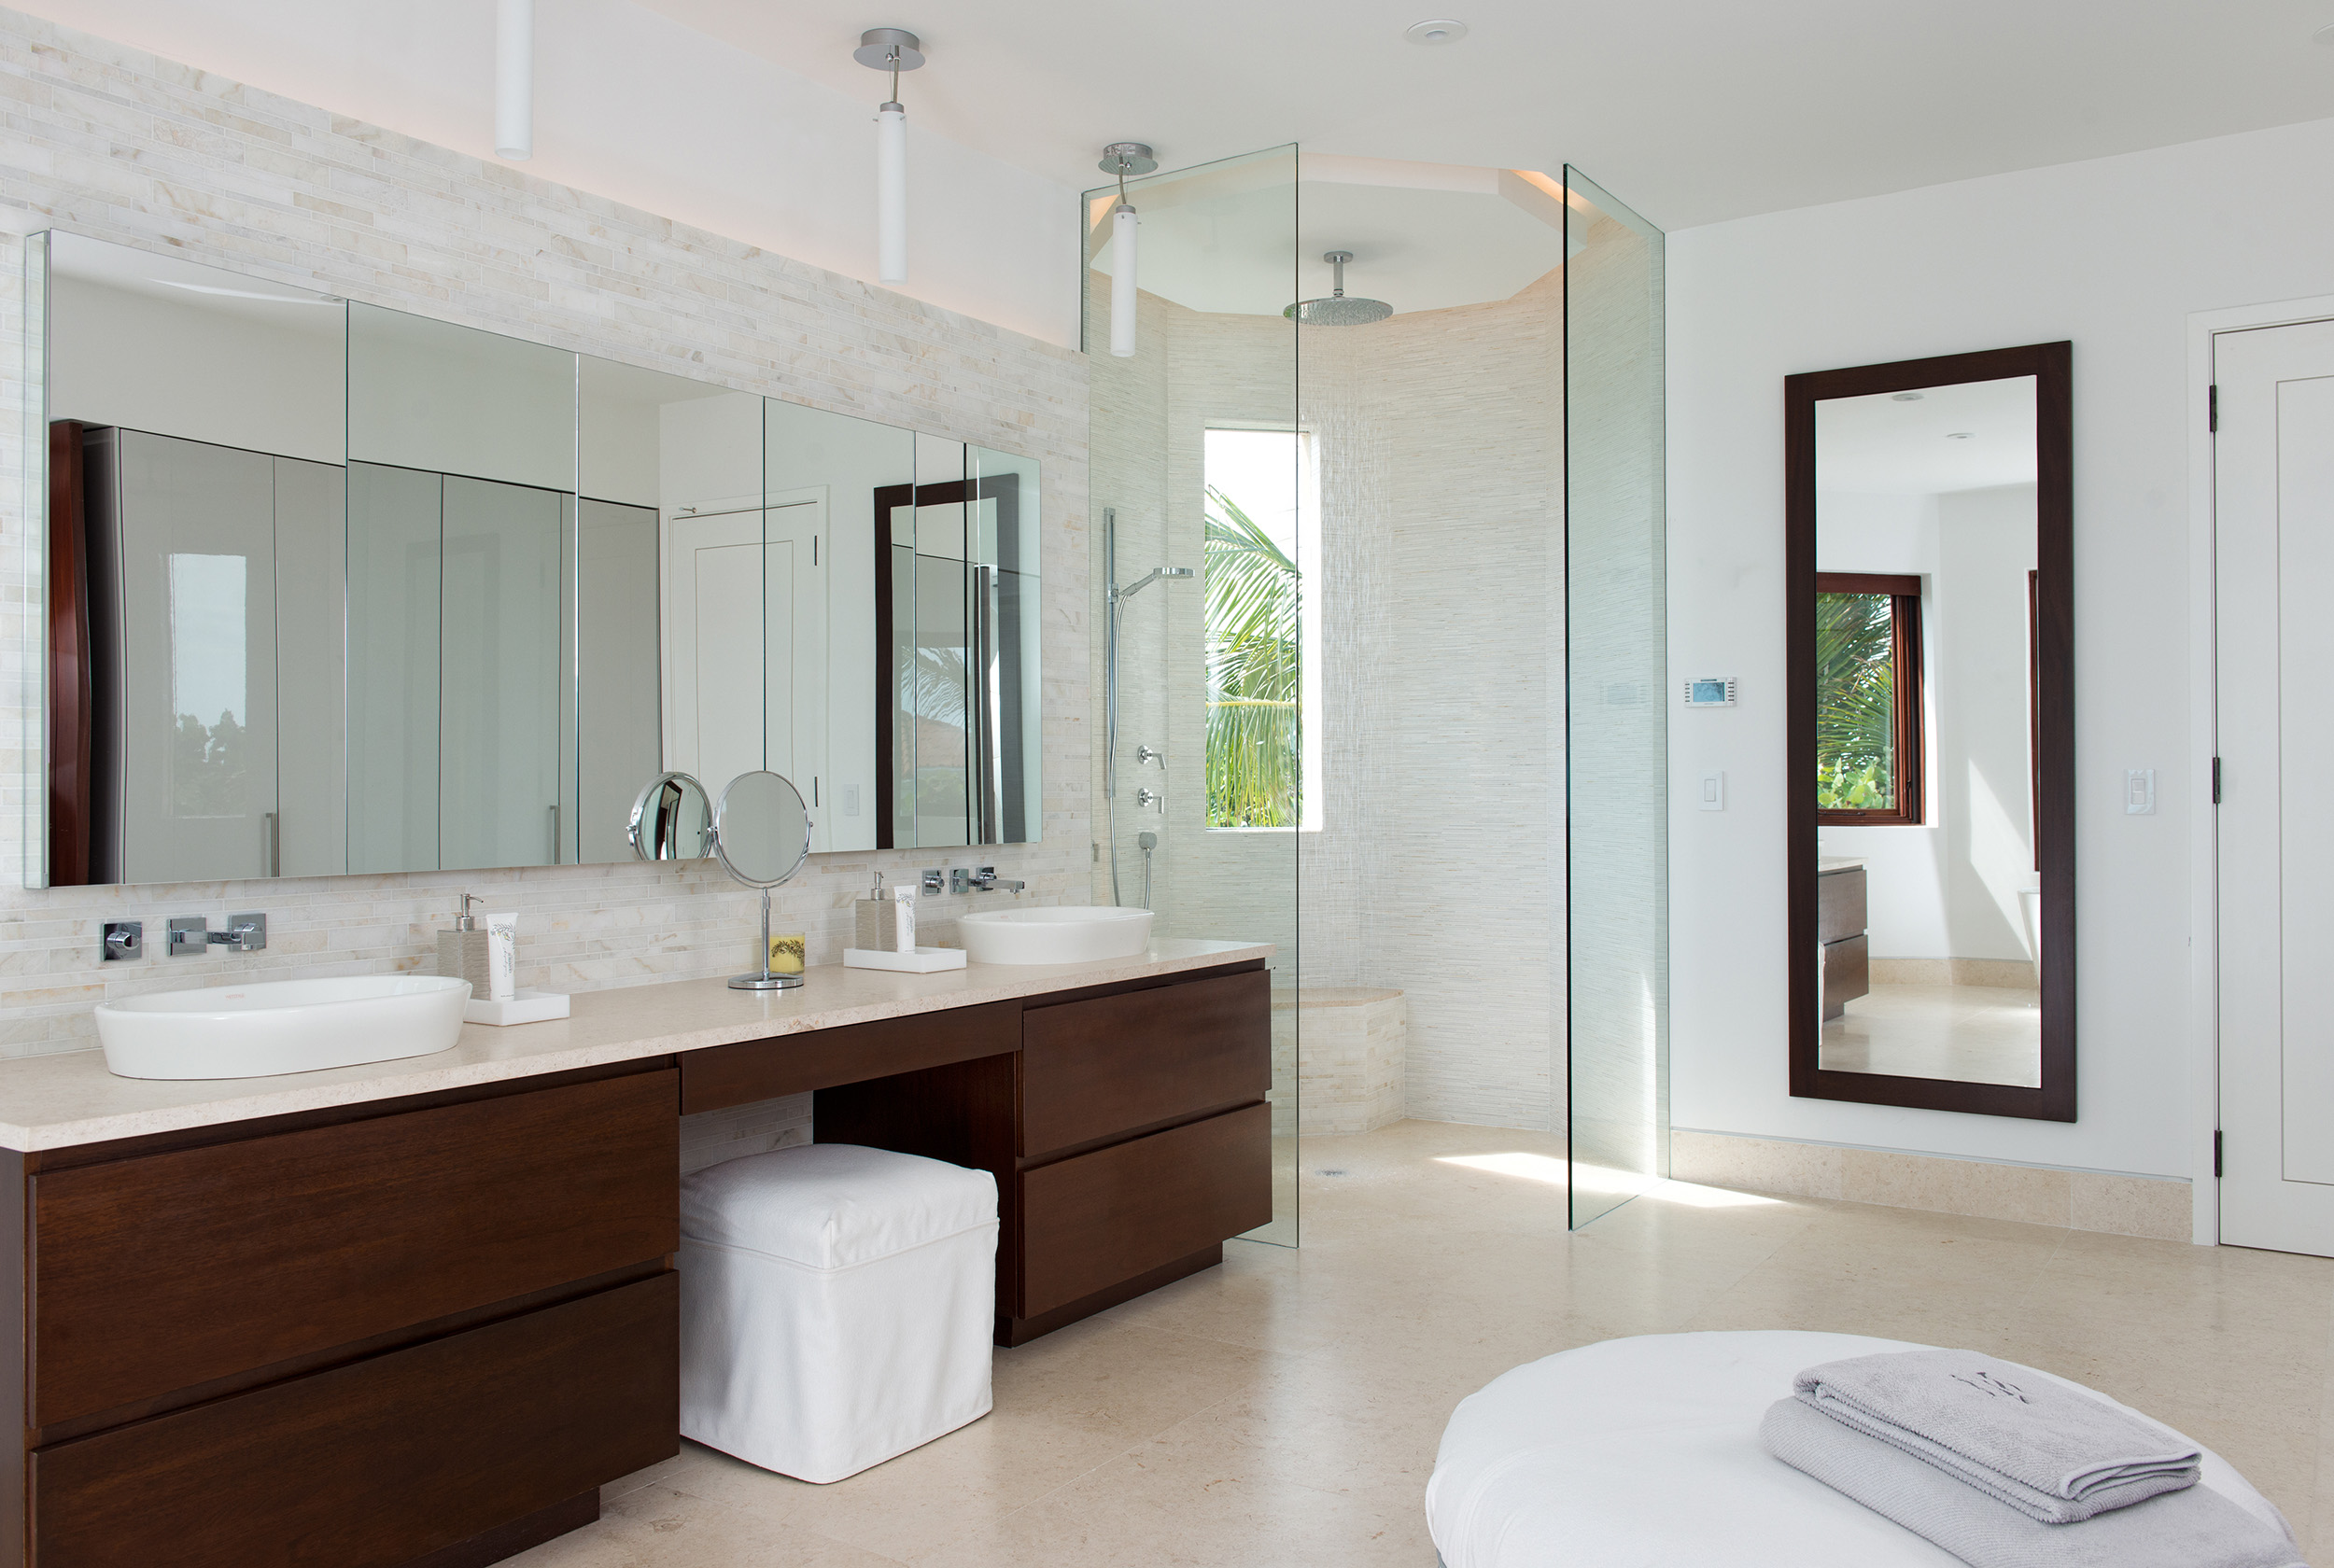 La Dolce Vita - view of one of the bathrooms showing the vanity, mirrors and rainshower